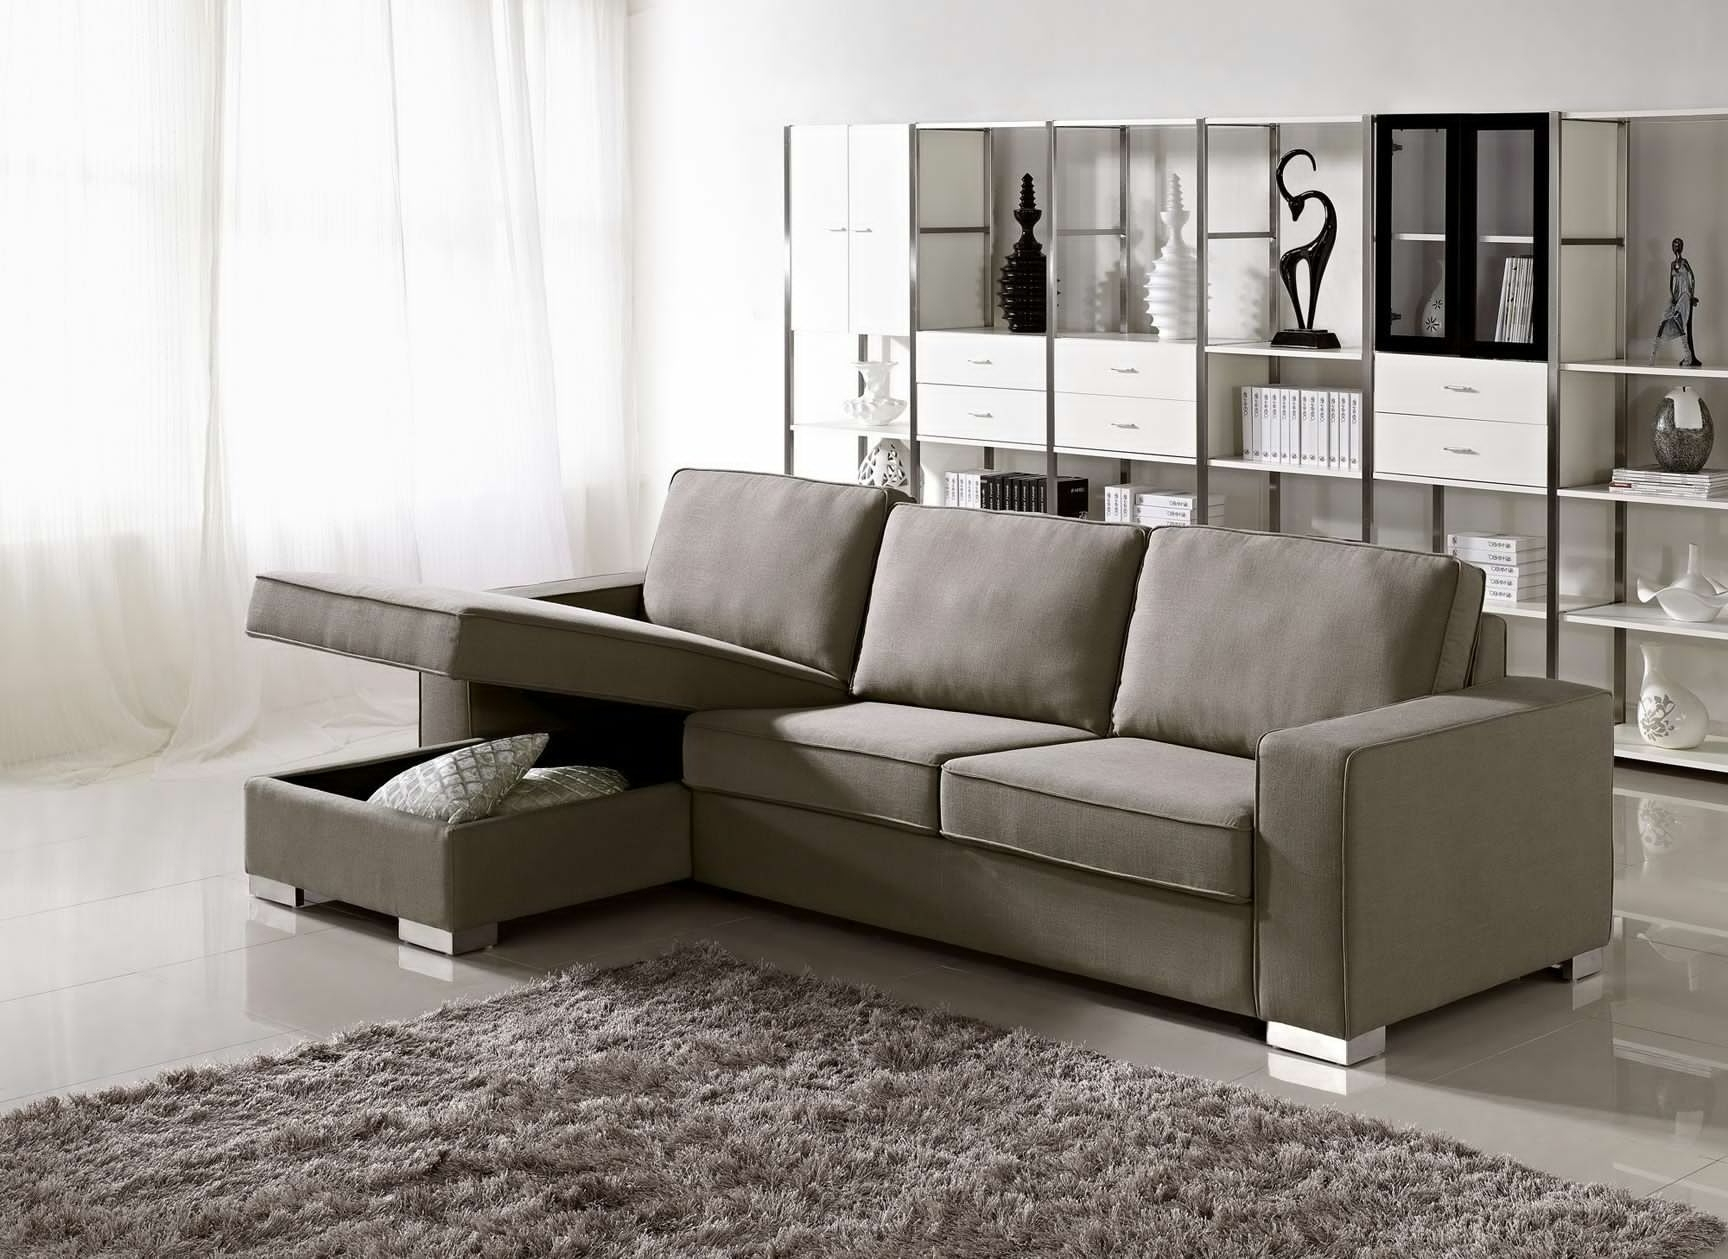 Sectional Sofa Design: Apartment Size Sectional Sofa With Chaise Regarding Most Current Apartment Size Sectionals With Chaise (View 11 of 15)